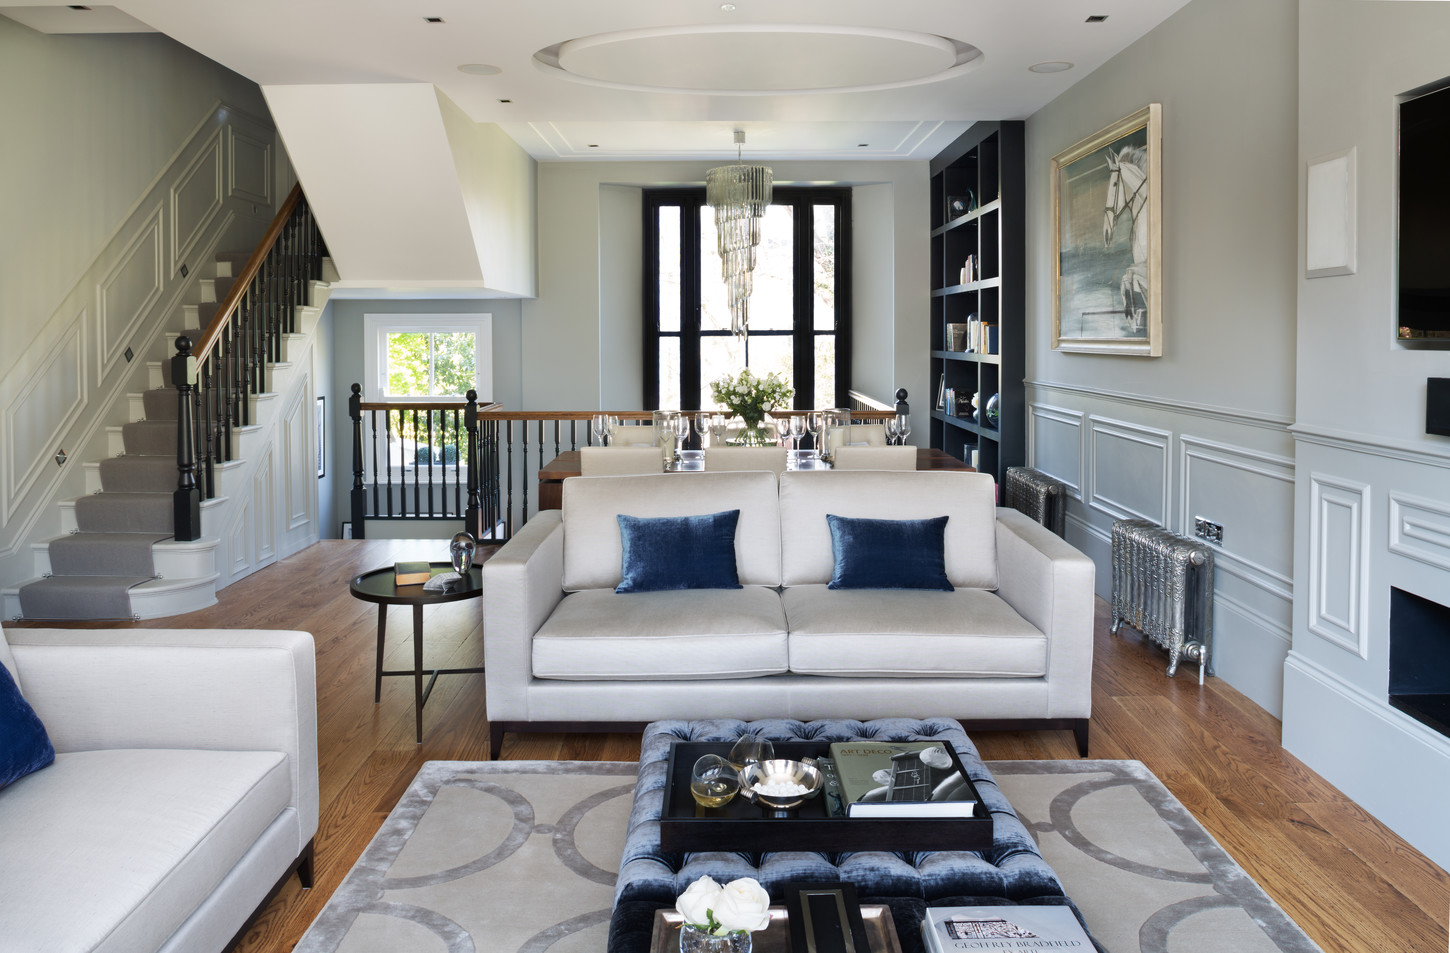 Image result for interior design for living space